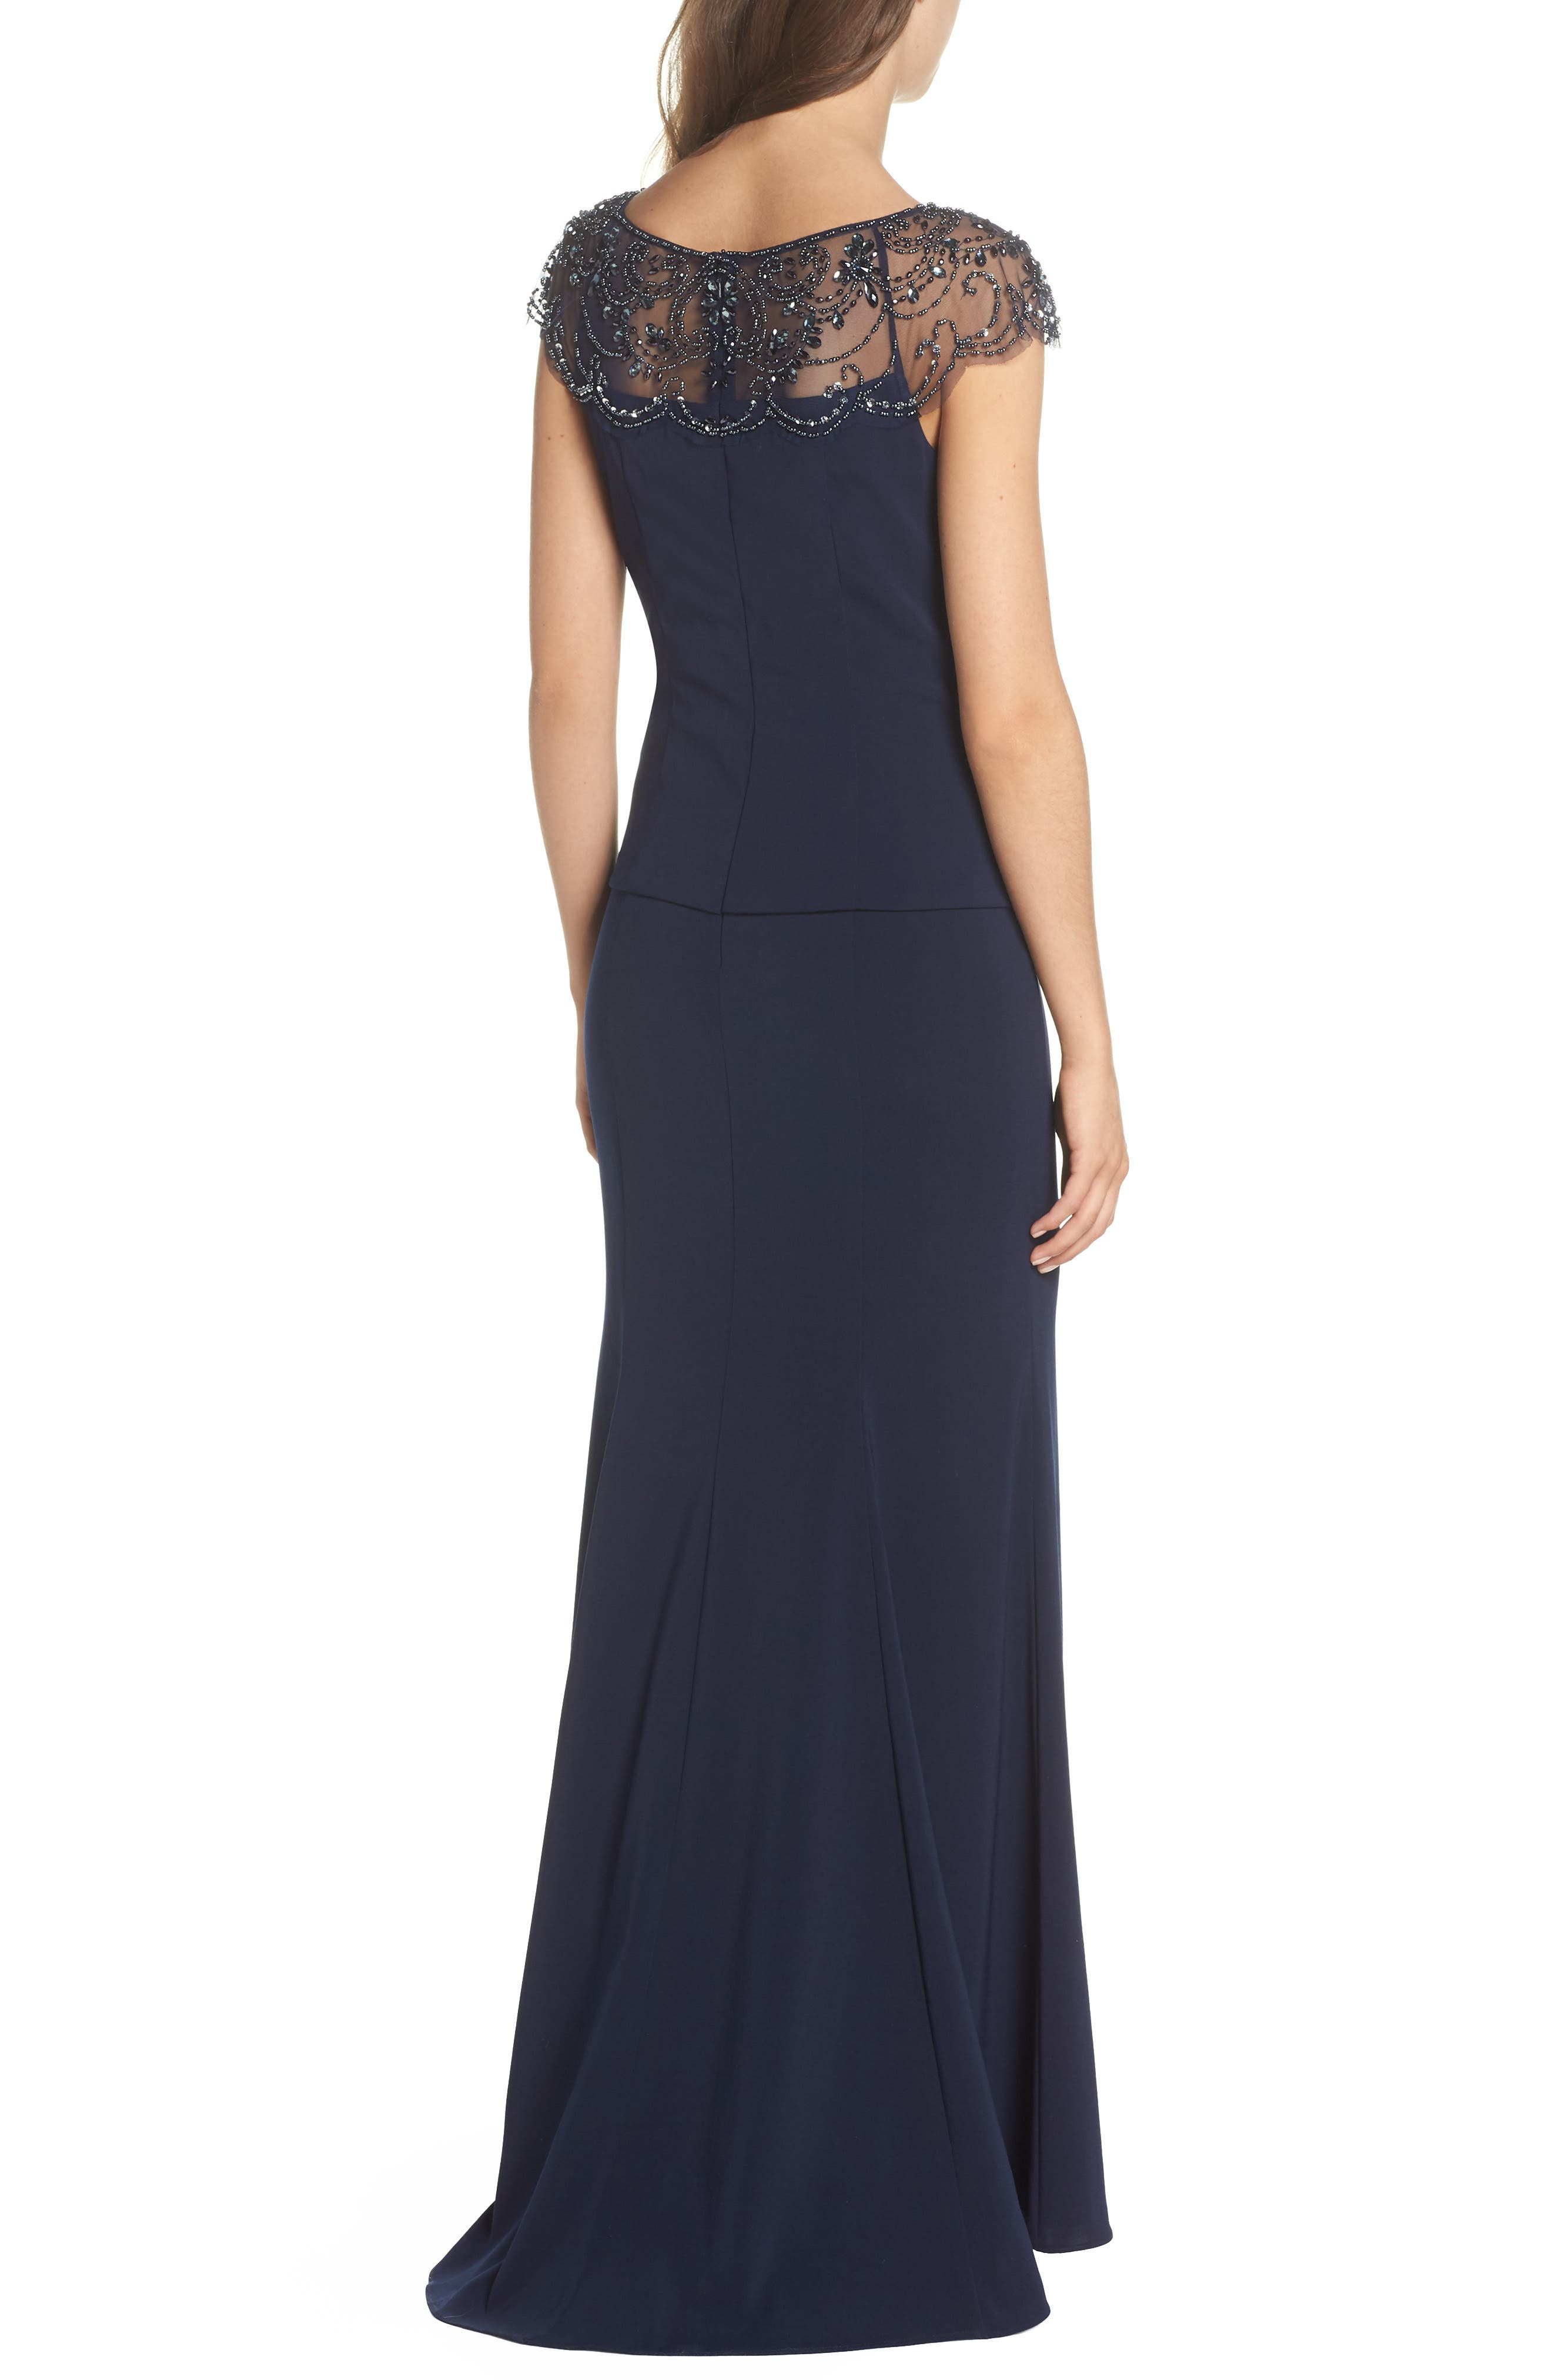 Xscape Mother-of-the-Bride Dresses   Nordstrom